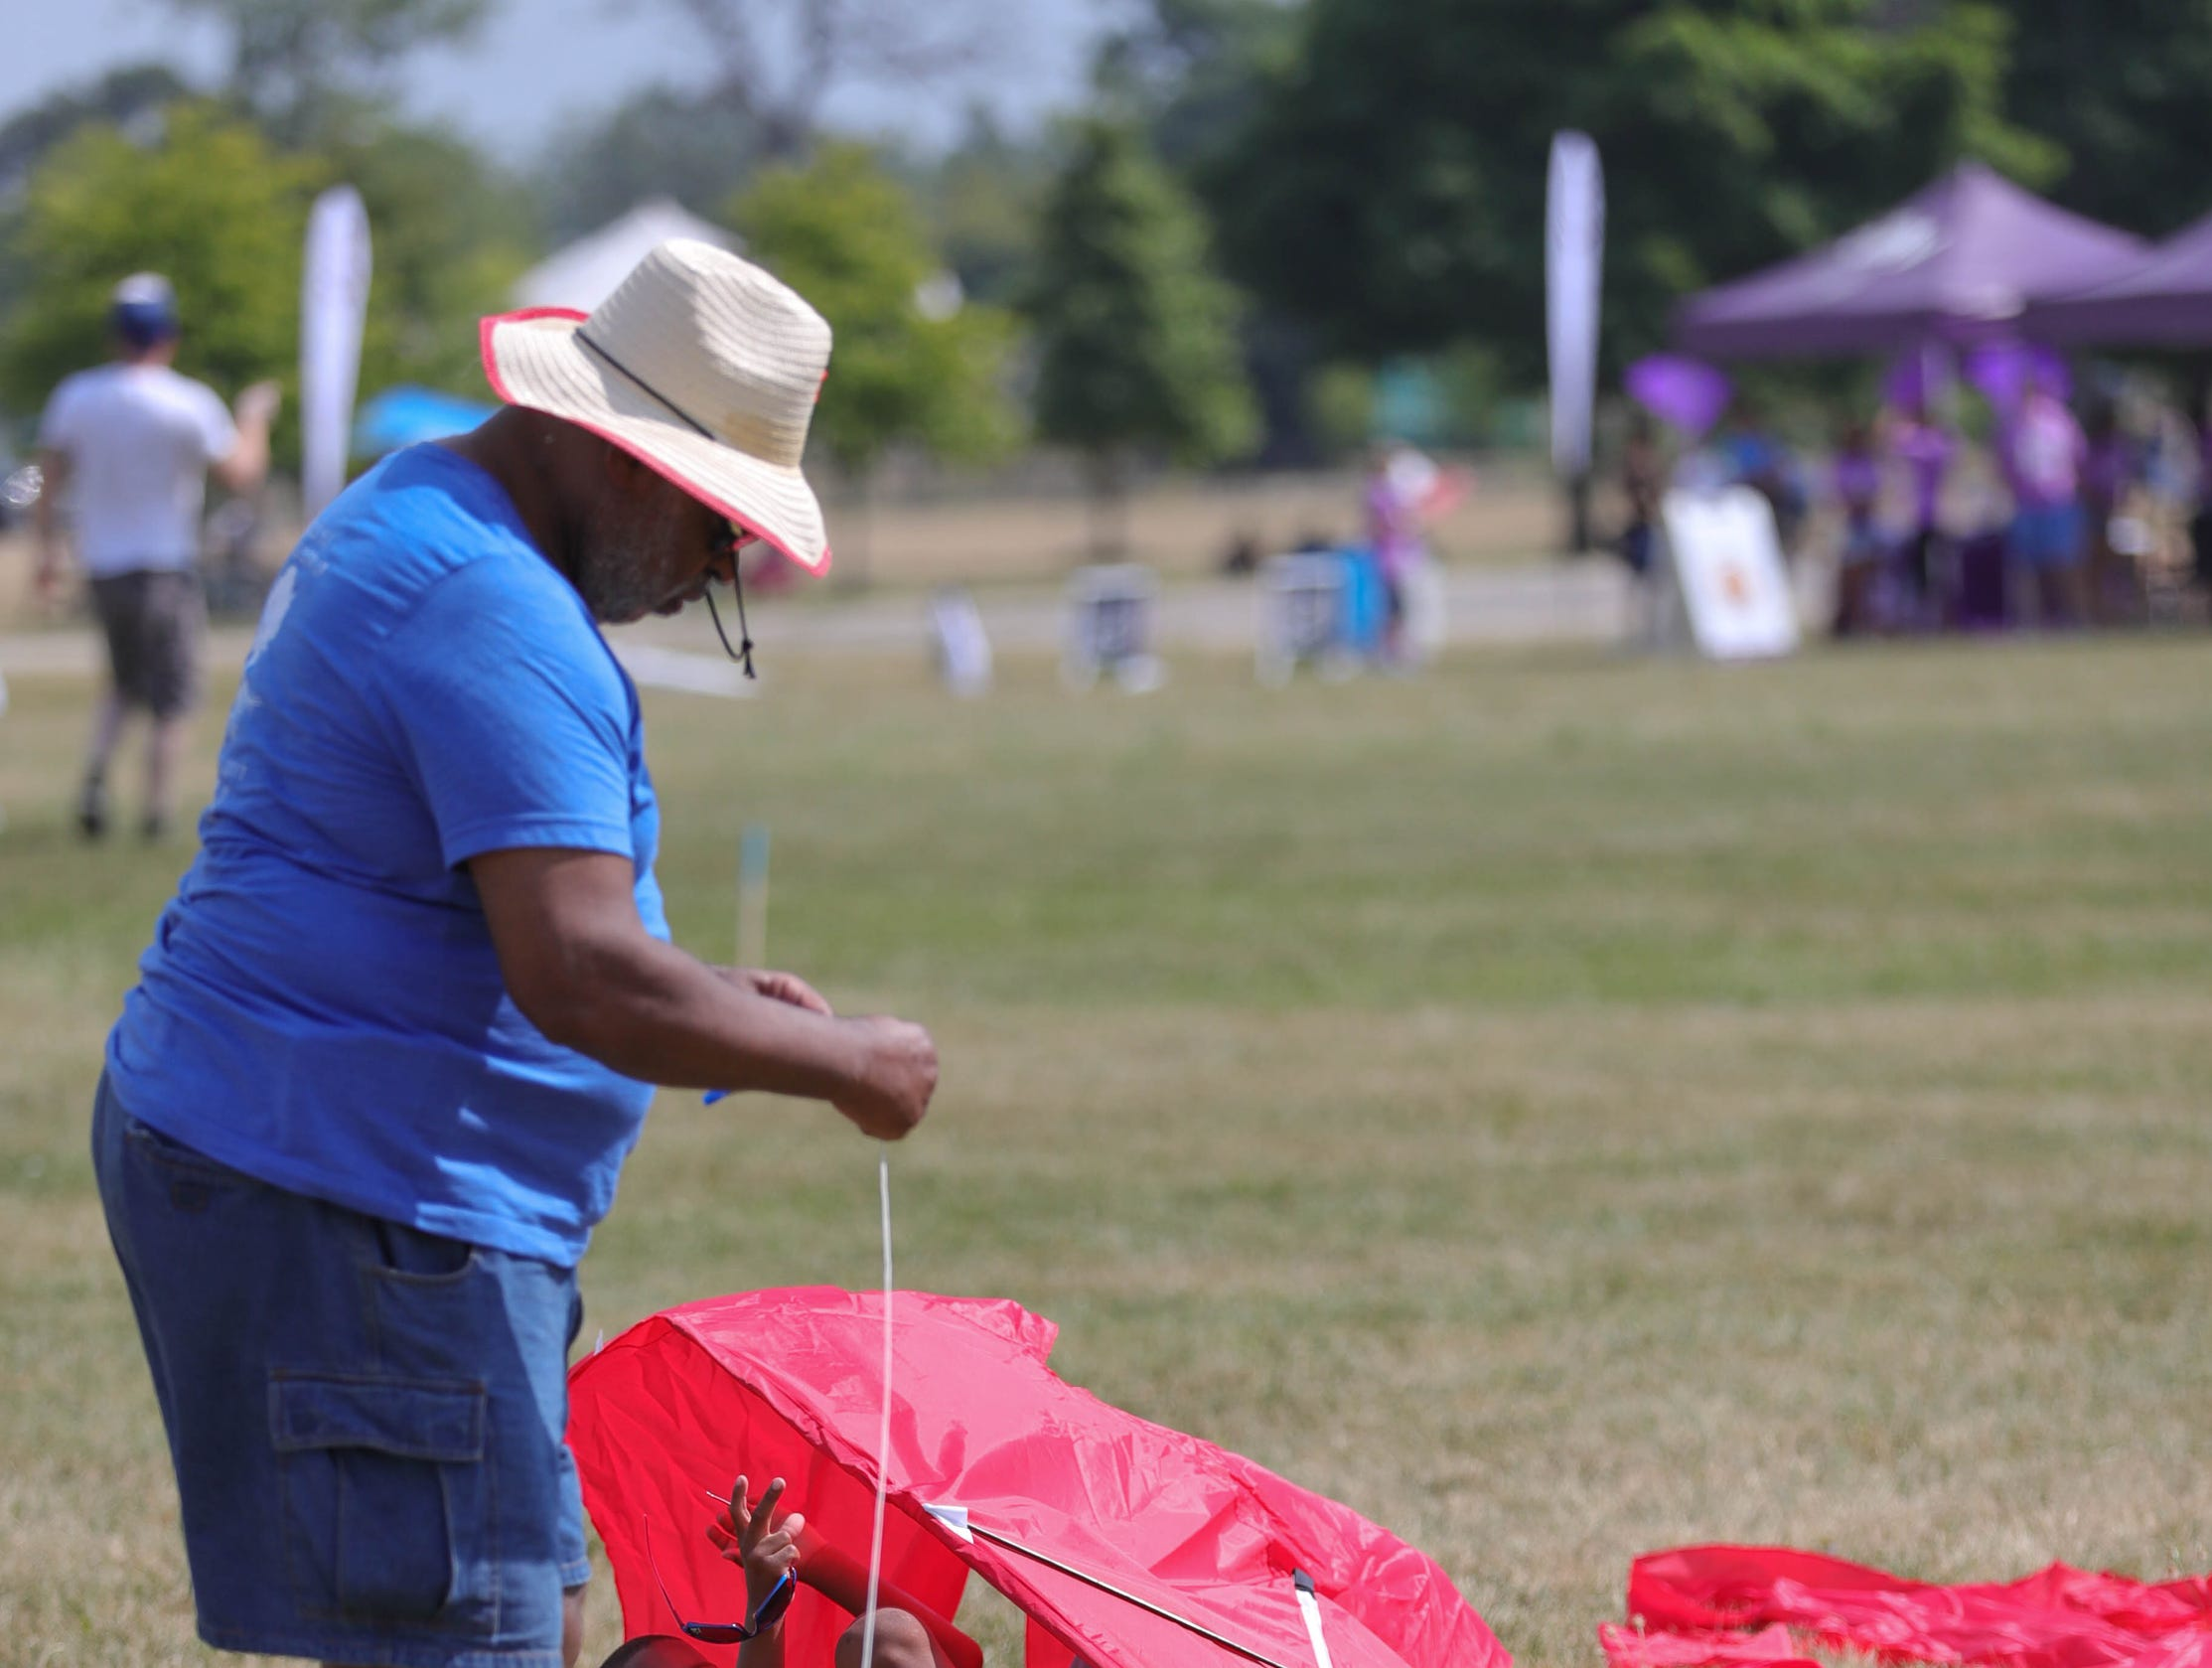 Ethan Vinson and his grandson Ethan Vinson 6, work on their kite during the Detroit Kite Festival on Belle Isle Sunday, July 15, 2018. Kite enthusiasts from all over Metro Detroit enjoyed the festivities.